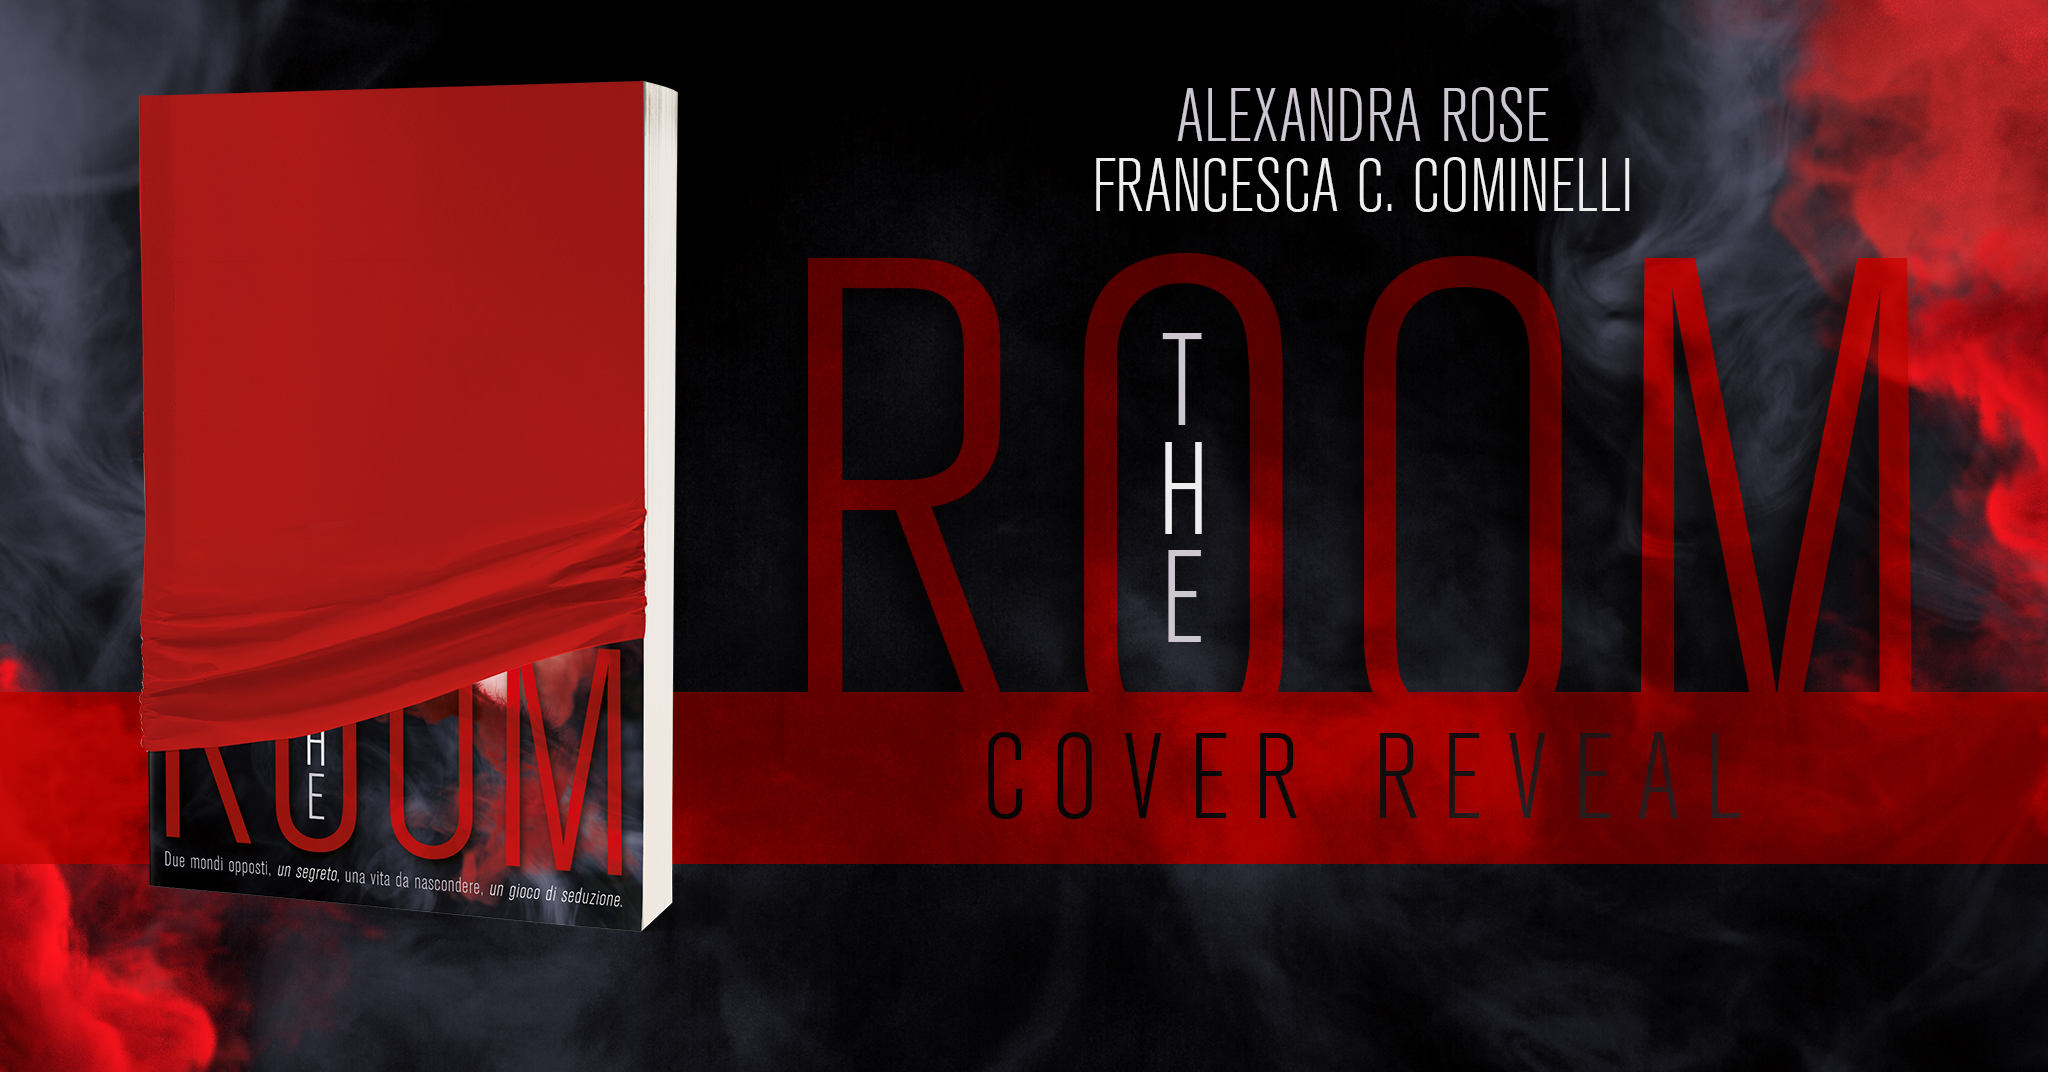 banner-cover-reveal.png